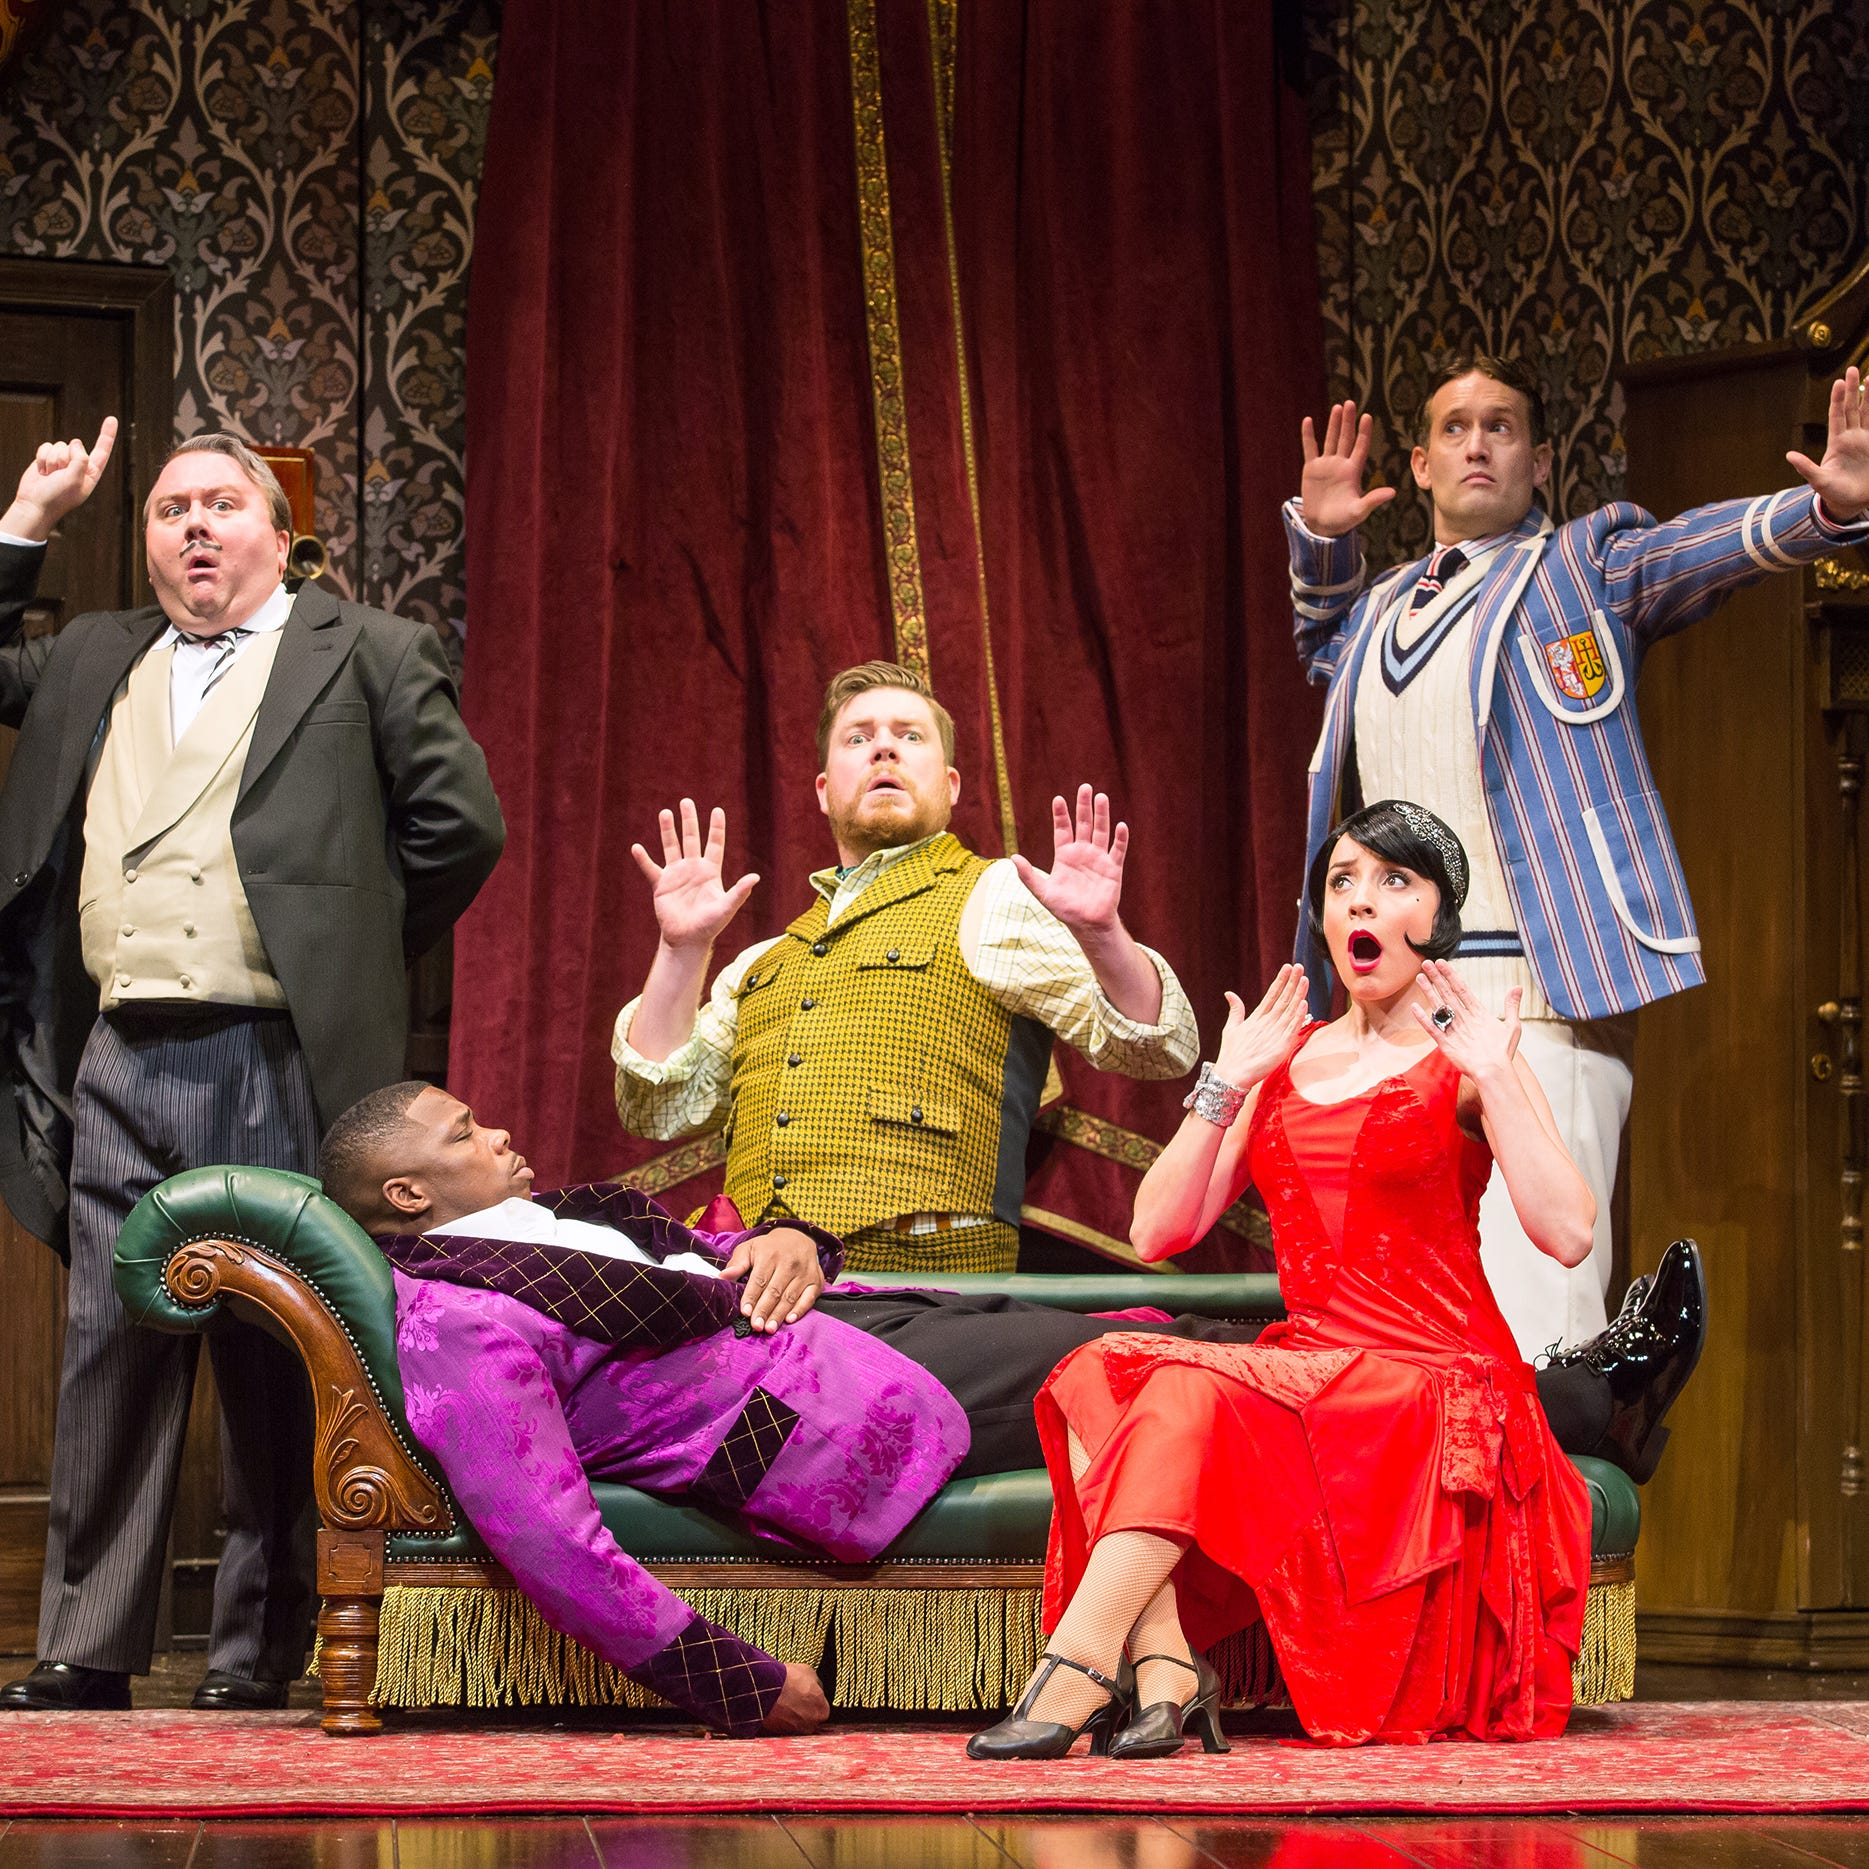 'The Play That Goes Wrong' set designer explains how he got right all that goes wrong